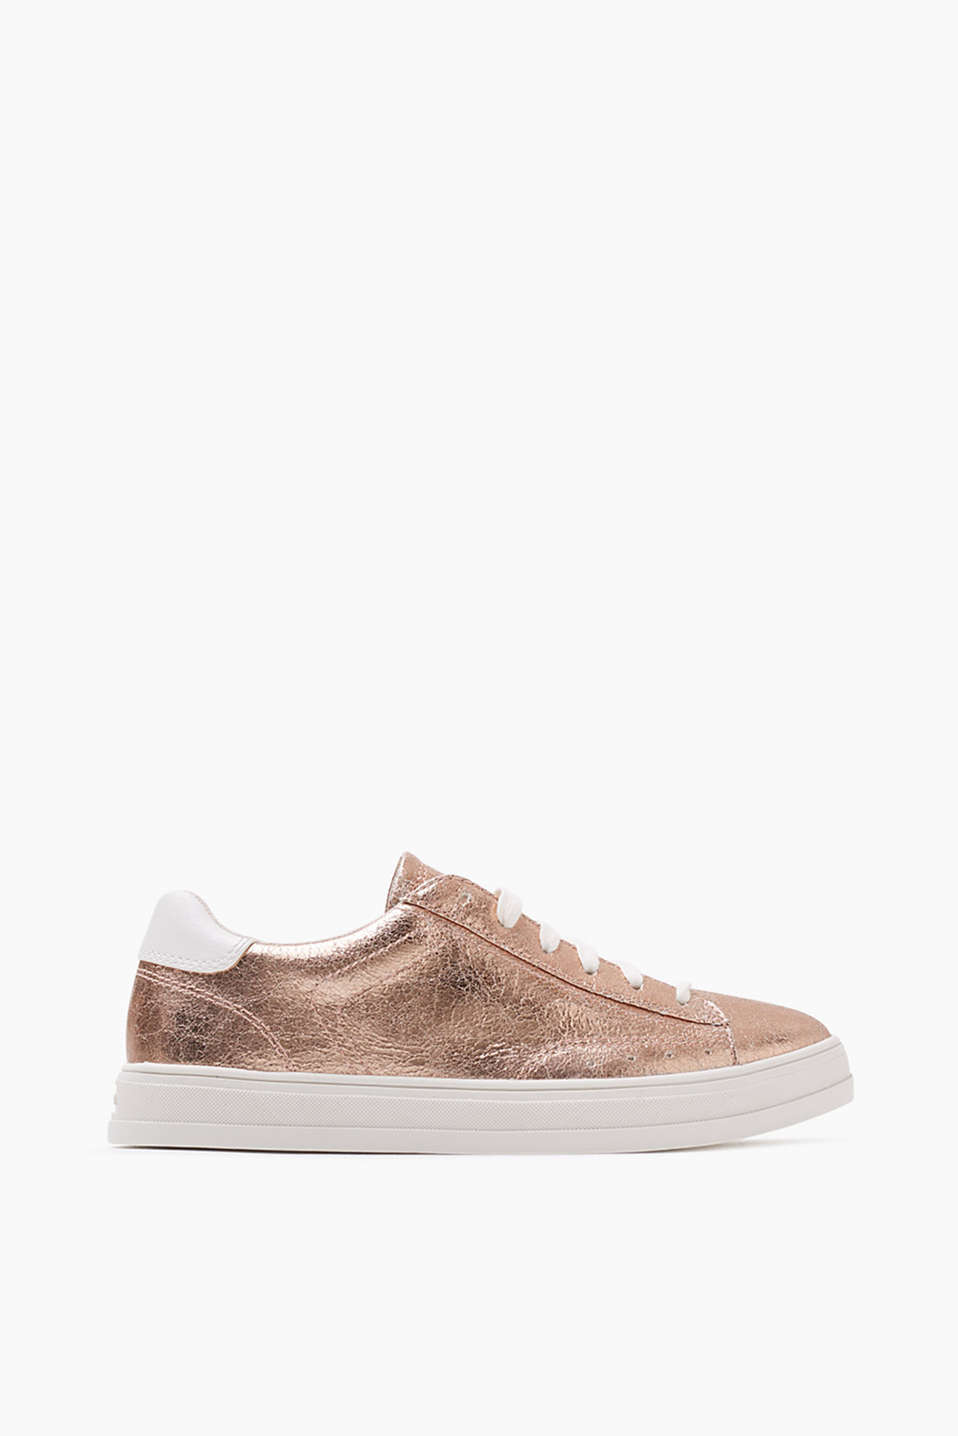 Lace-up trainers in a glamorous metallic look